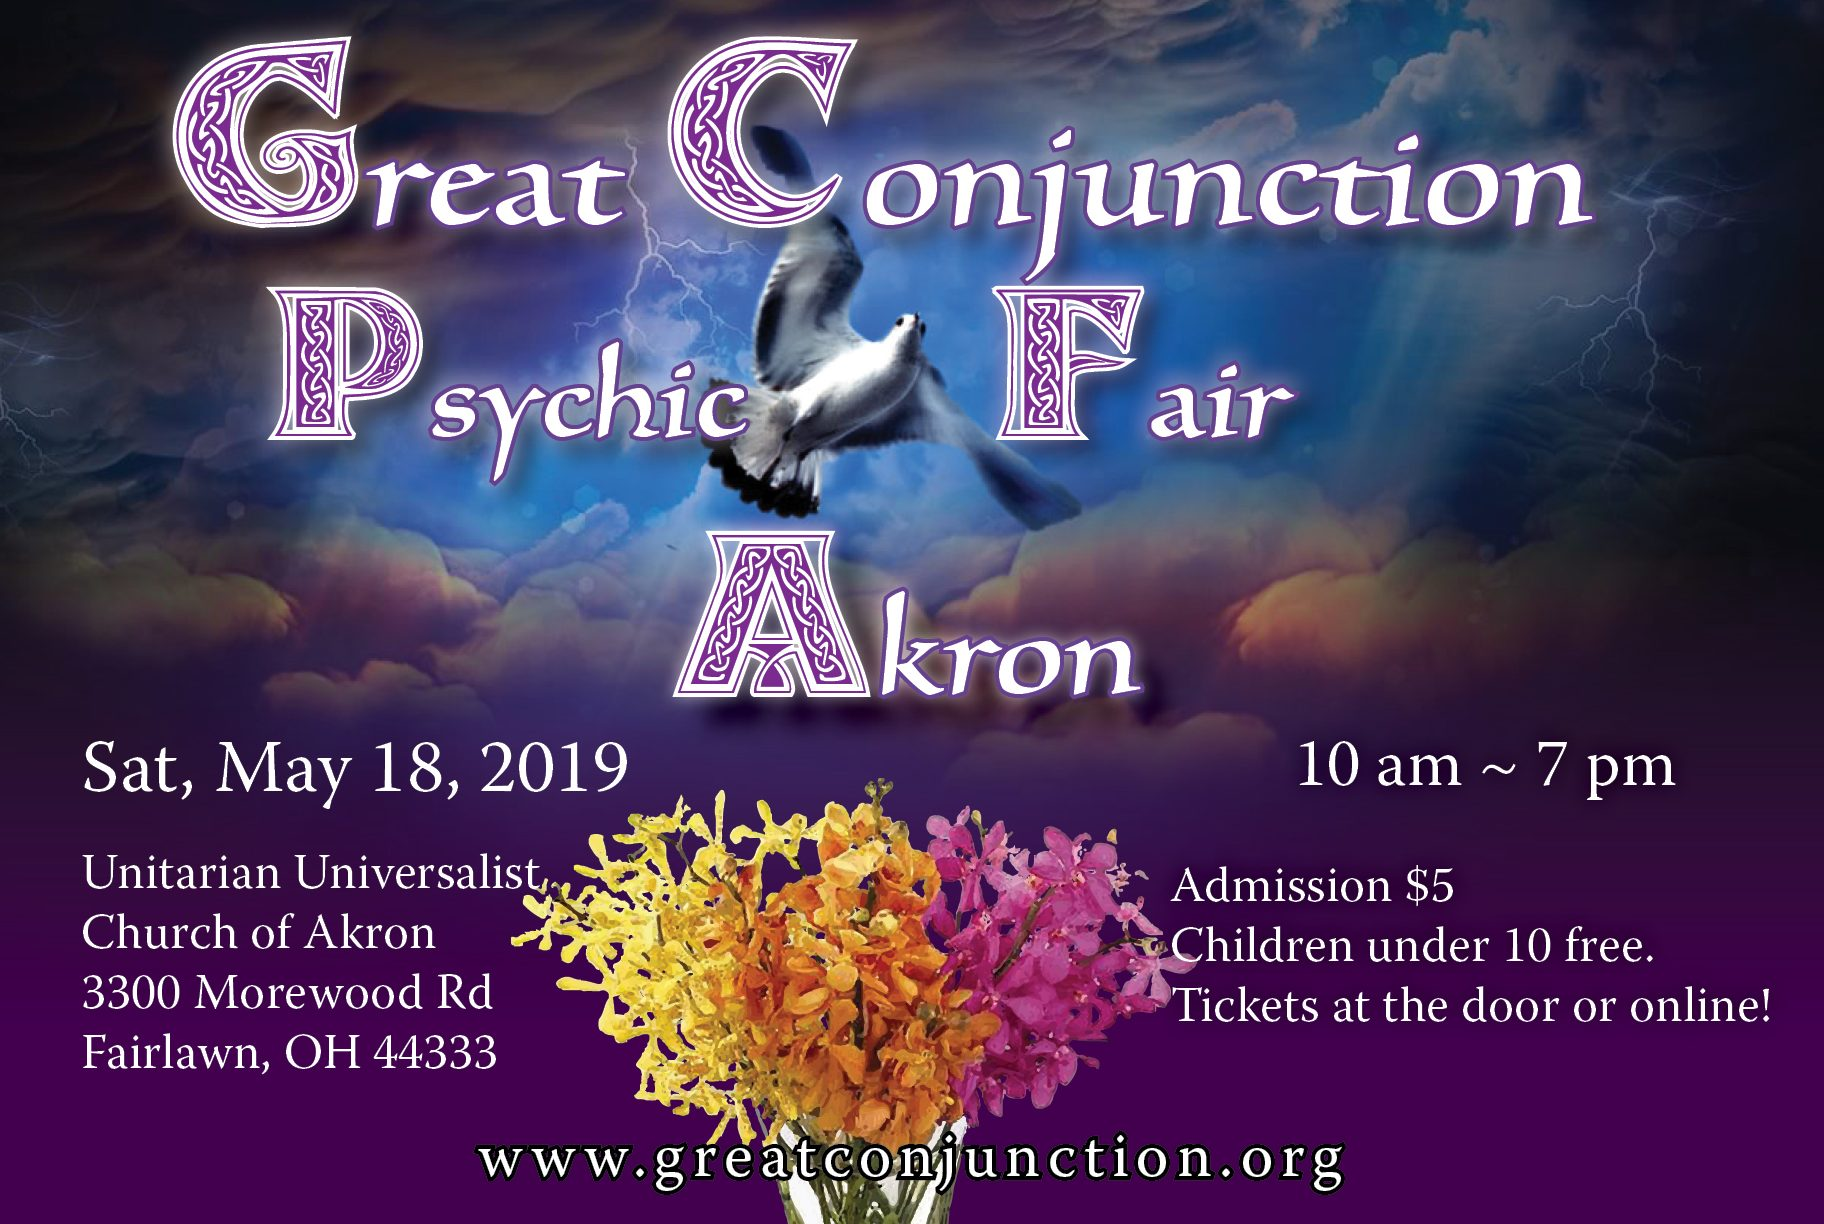 Great Conjunction Psychic Fair presented by Great Conjunction